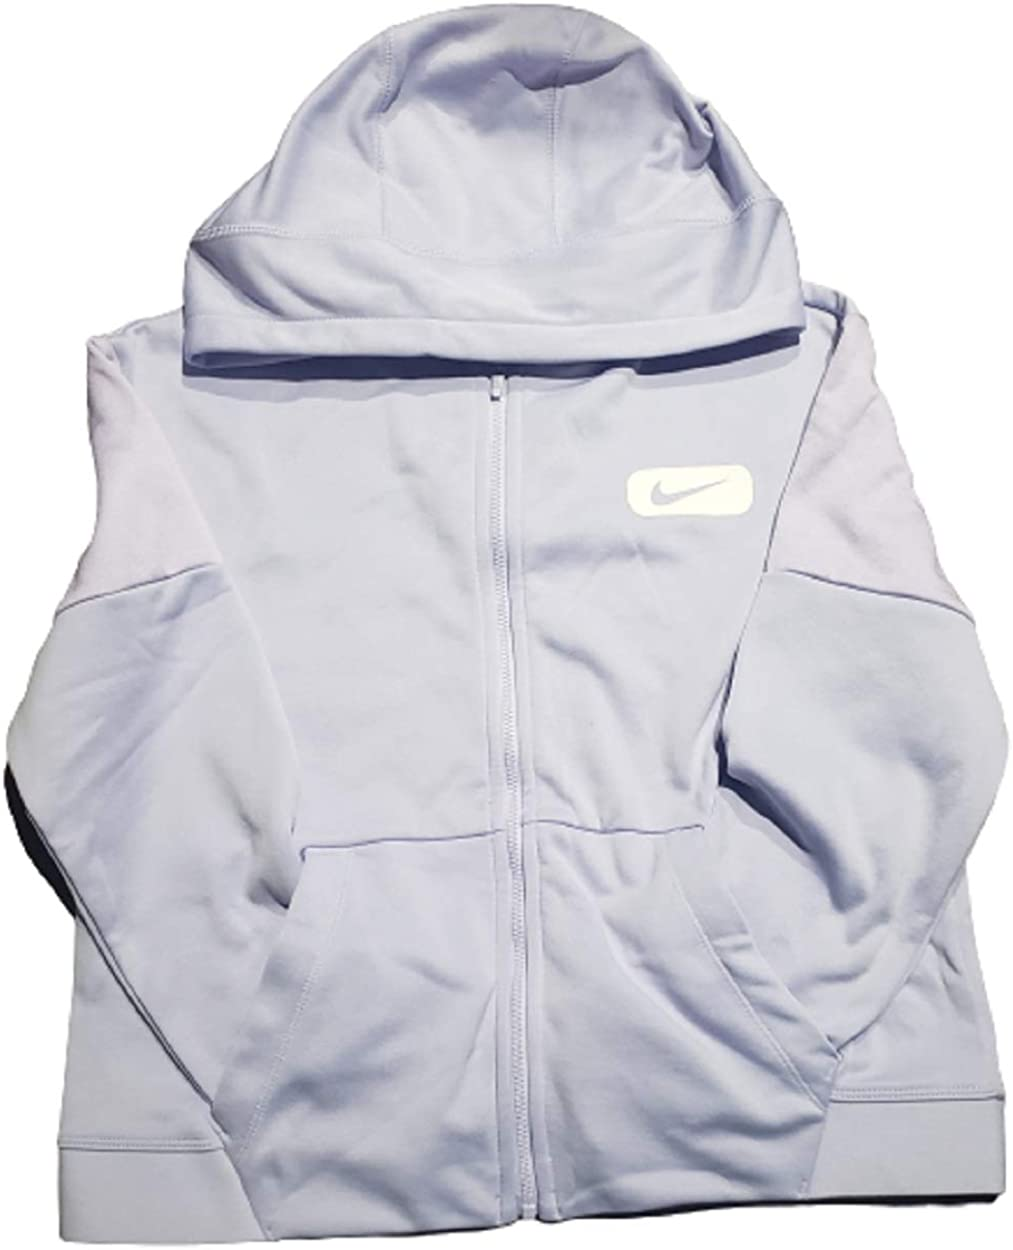 National uniform free shipping Nike Girl's Therma Zip Up Color Block Popularity L Lila BV2819-539 Hoodie